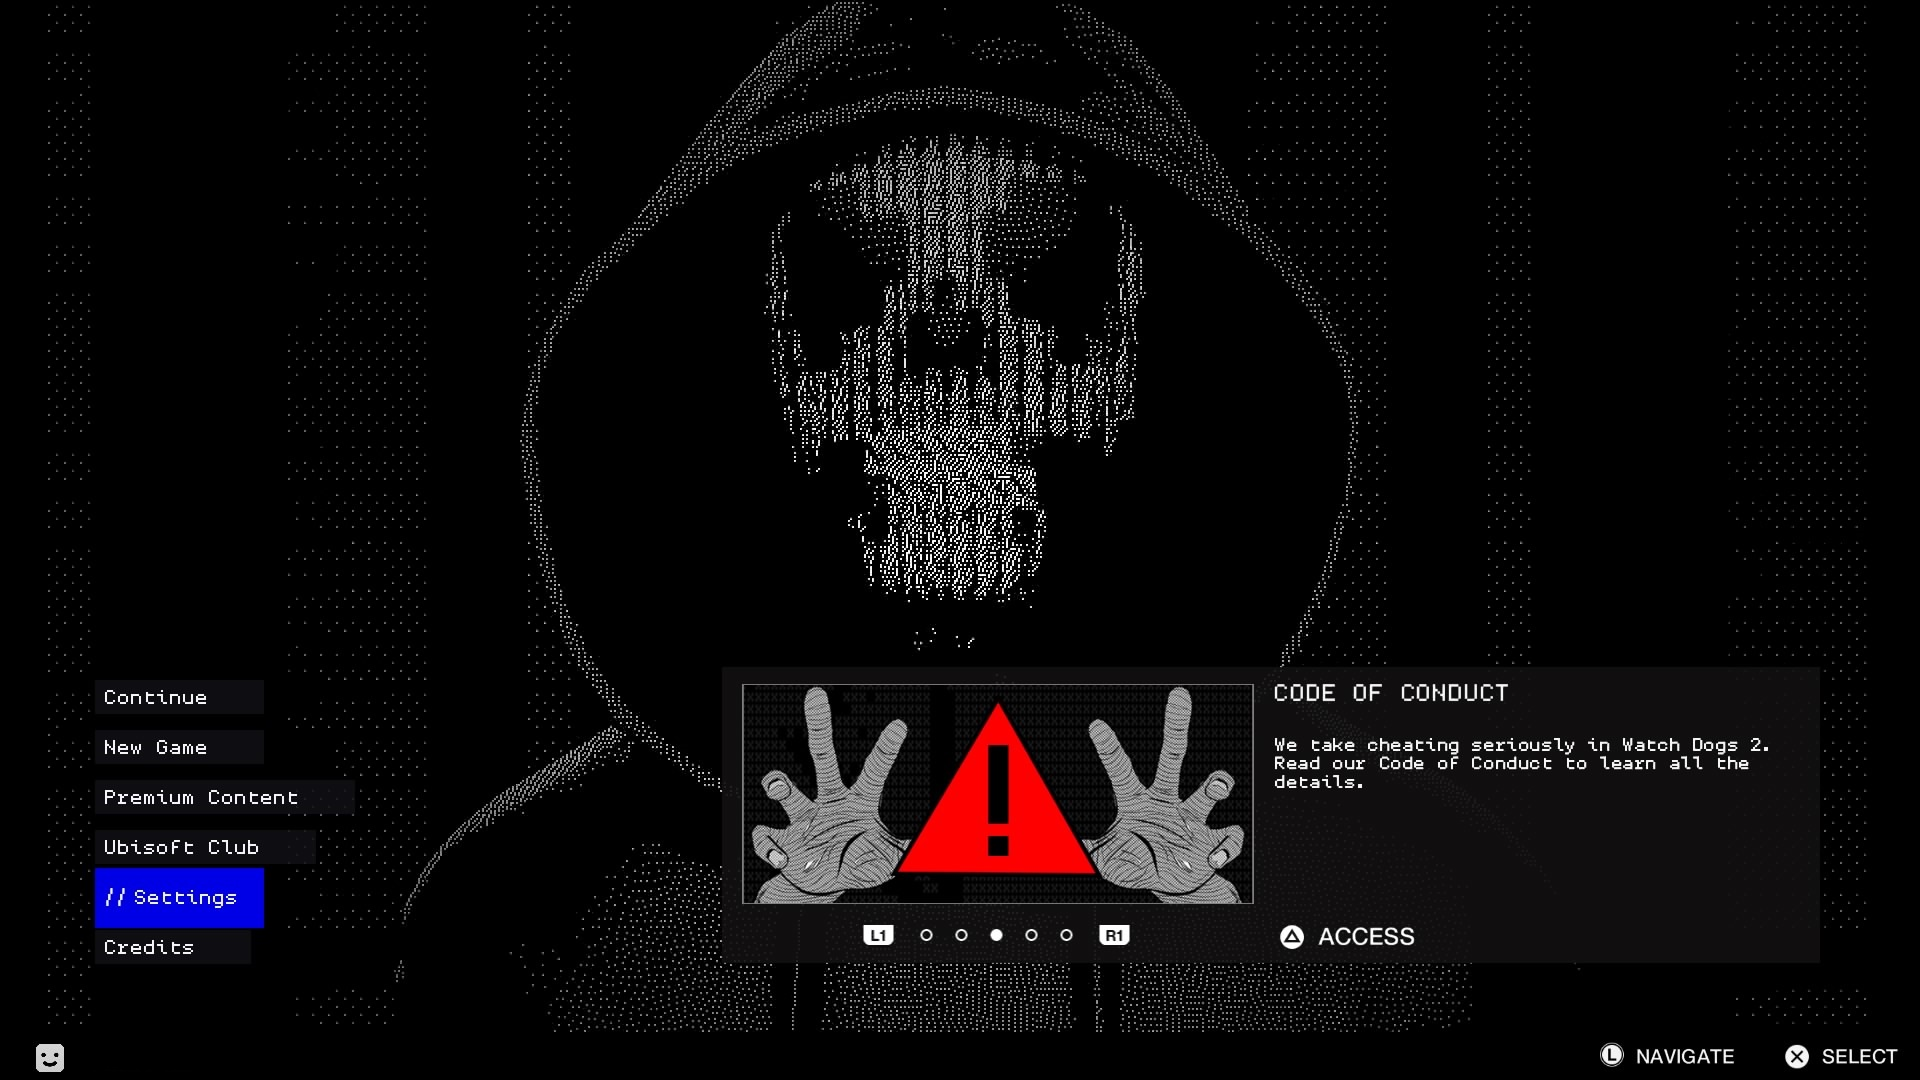 Code of Conduct for Watch Dogs 2 - Ubisoft Support